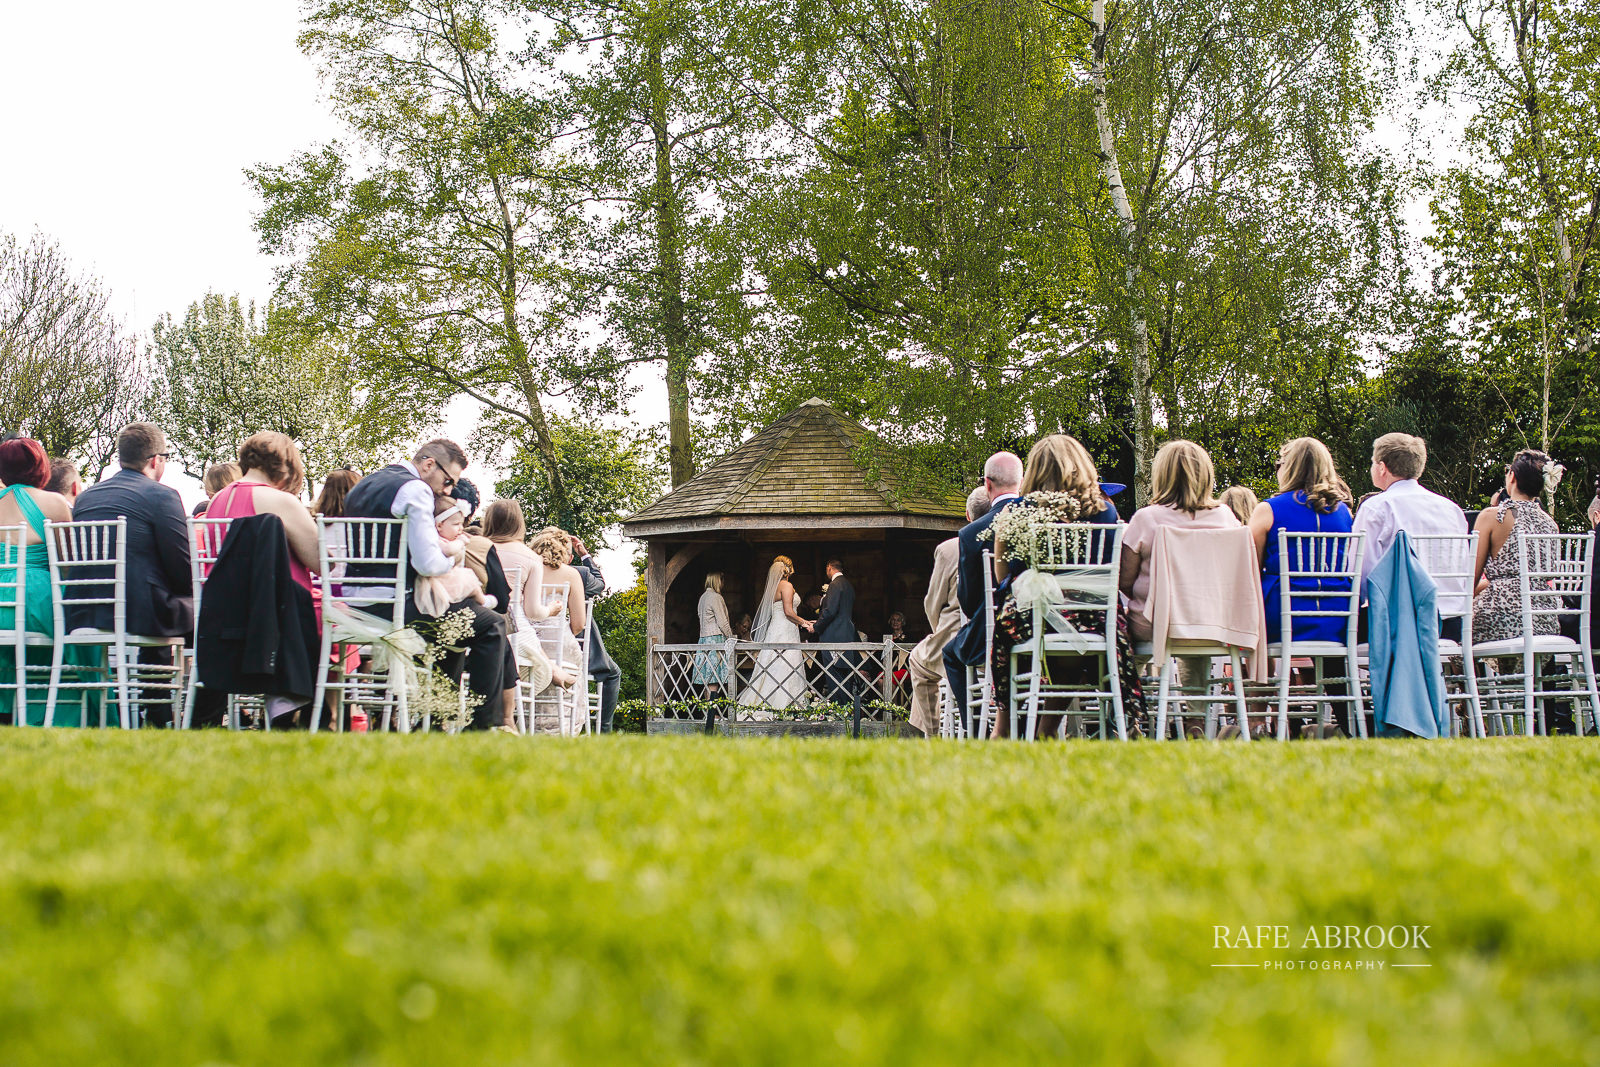 south farm wedding royston hertfordshire wedding photographer rafe abrook photography-1533.jpg